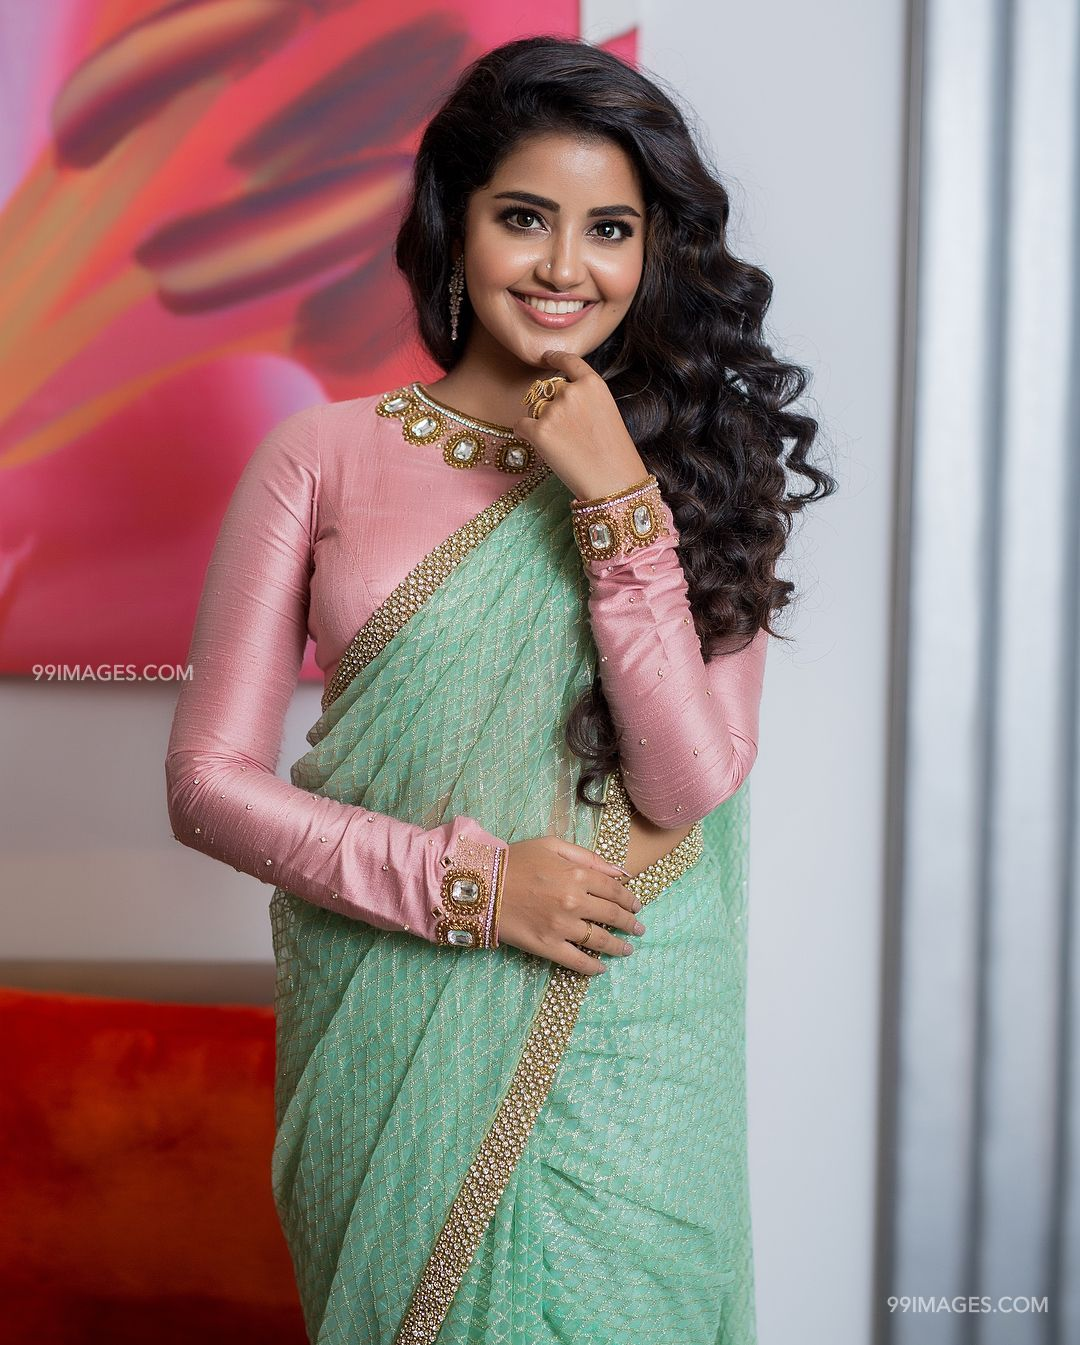 Anupama Parameswaran HD Wallpapers (Desktop Background / Android / iPhone) (1080p, 4k) (81360) - Anupama Parameswaran